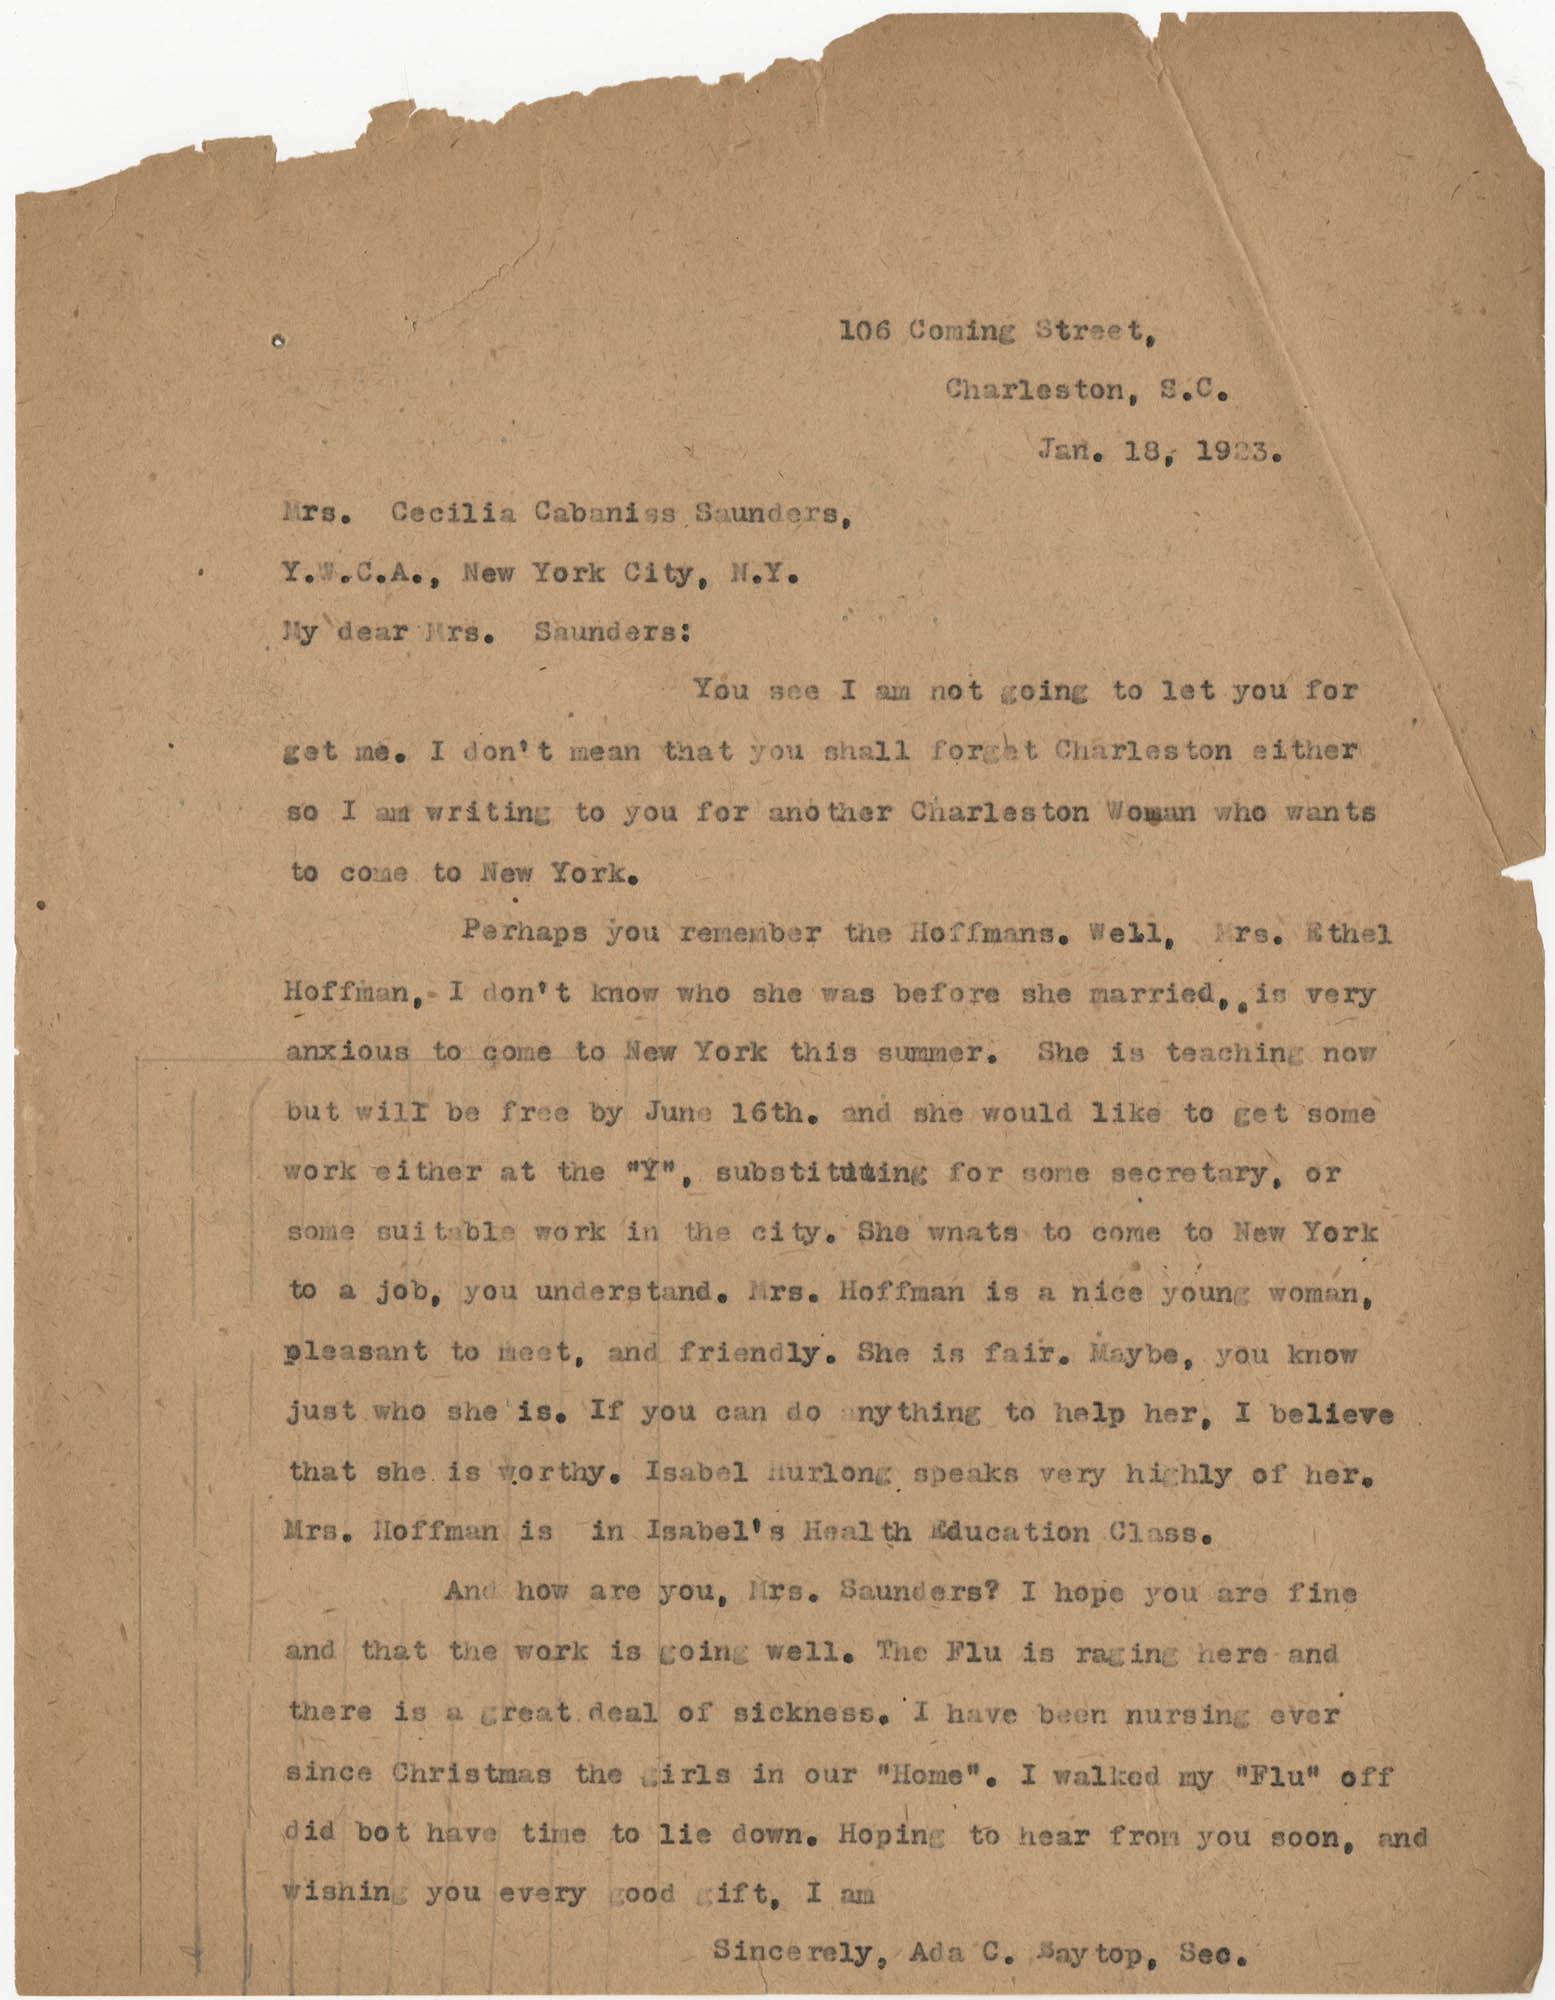 Letter from Ada C. Baytop to Cecilia Cabaniss Saunders, January 18, 1923